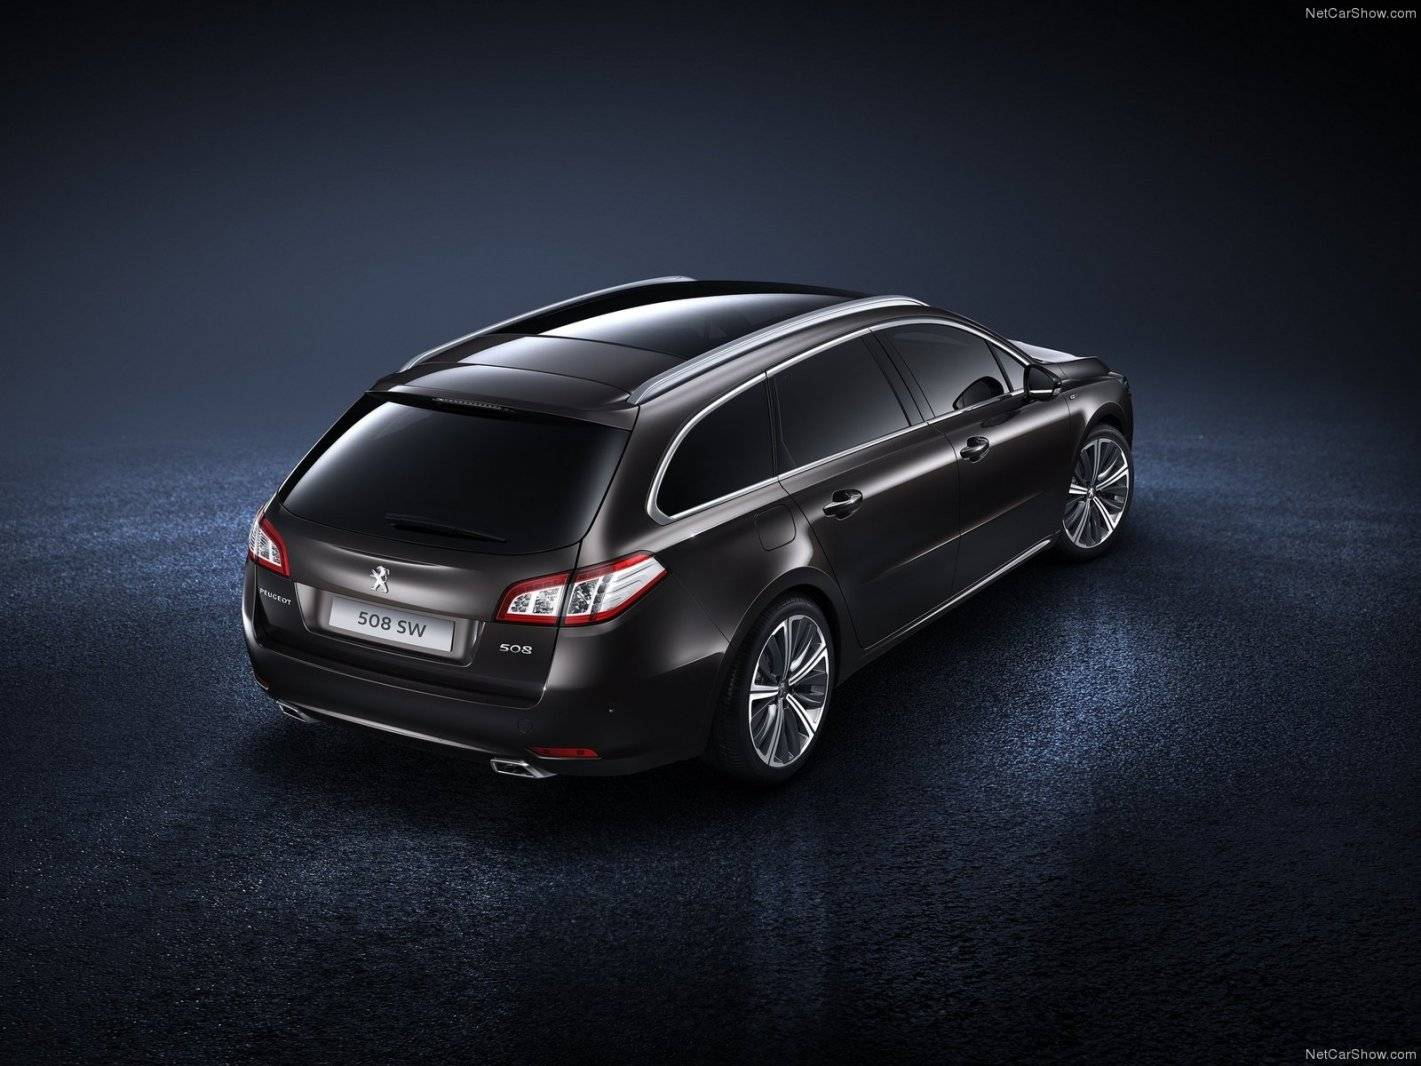 orderboek vernieuwde peugeot 508 geopend autonieuws. Black Bedroom Furniture Sets. Home Design Ideas